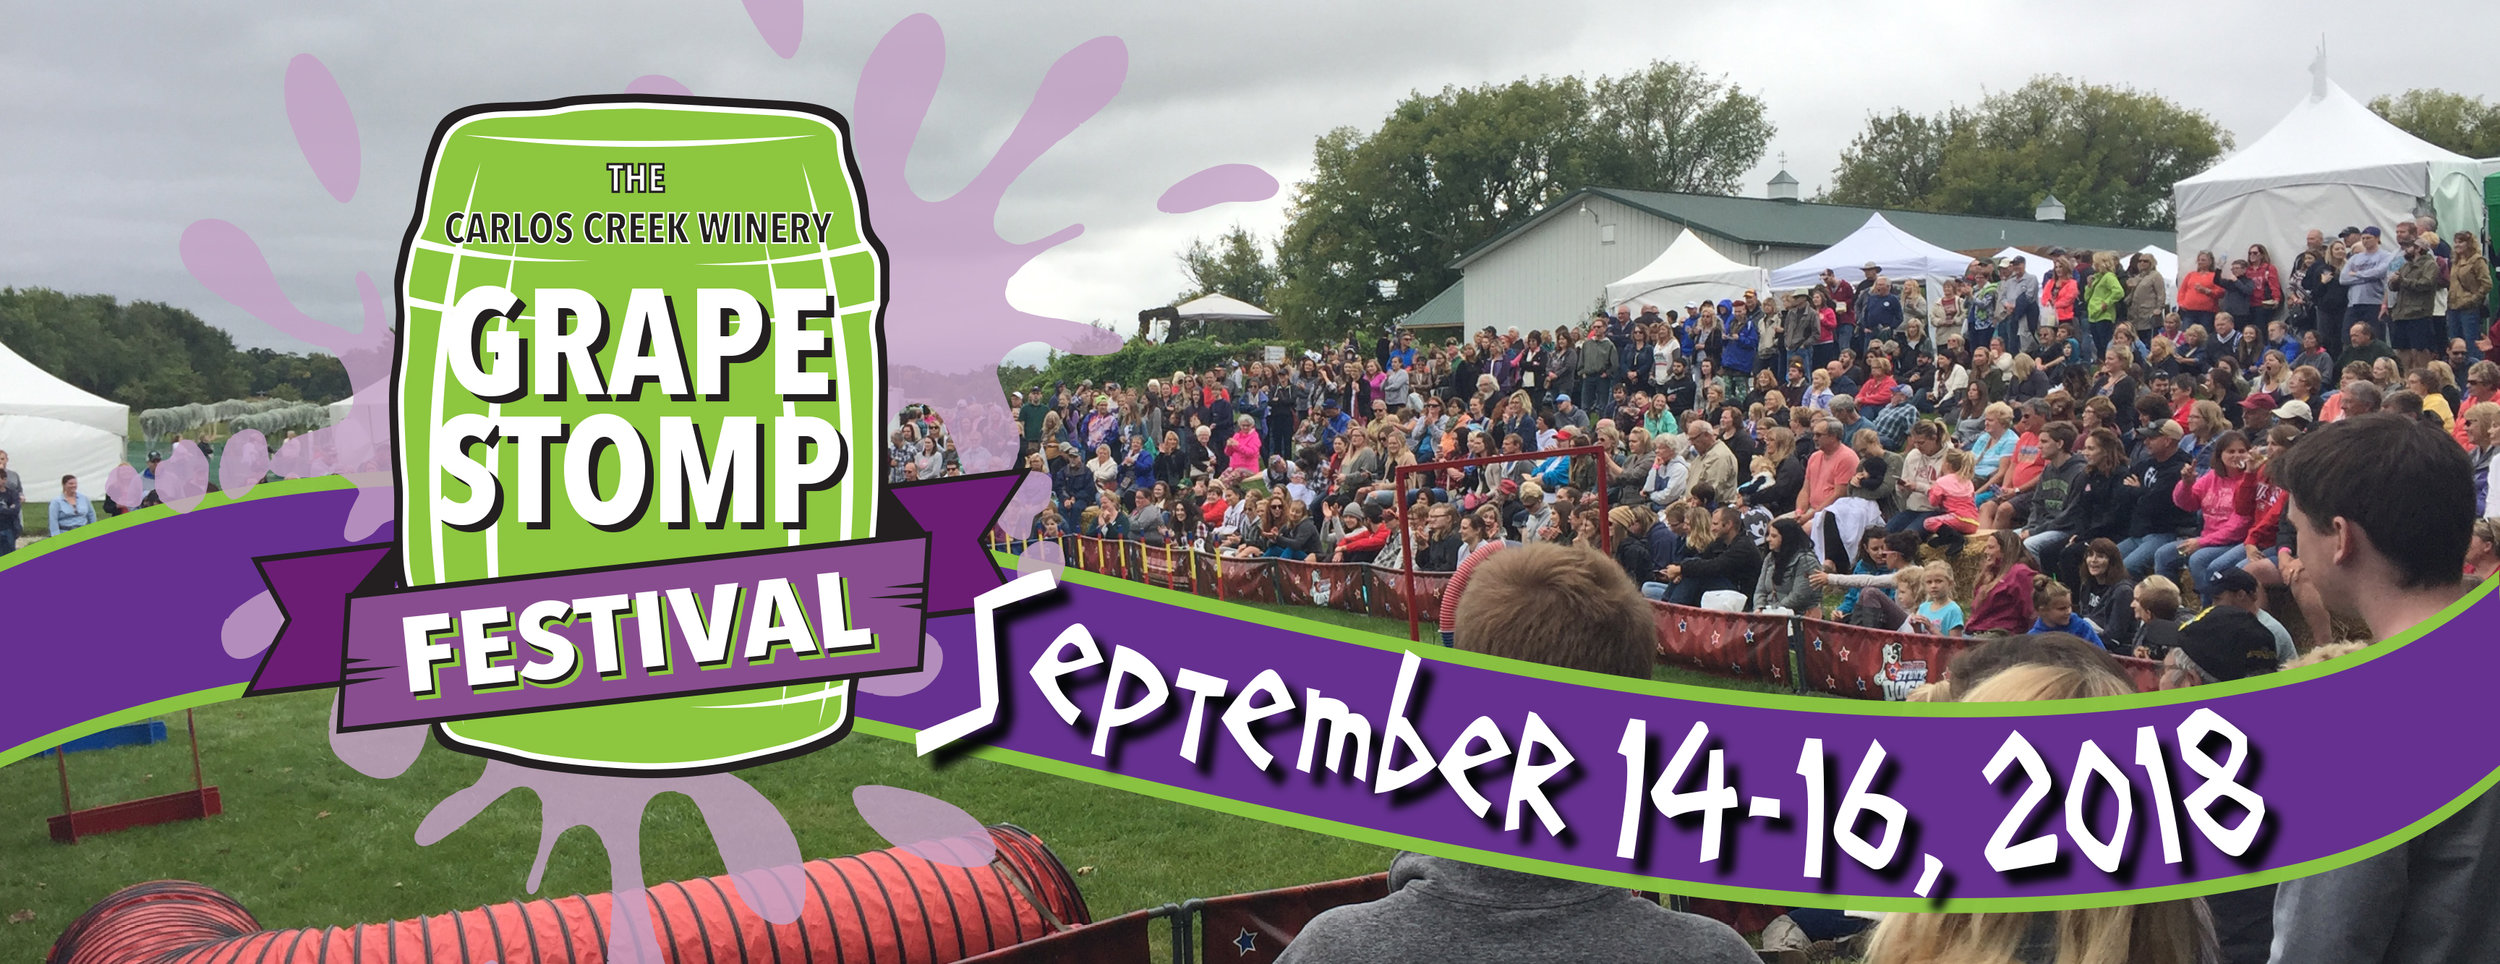 Click here to go to our Grape Stomp website for more information!